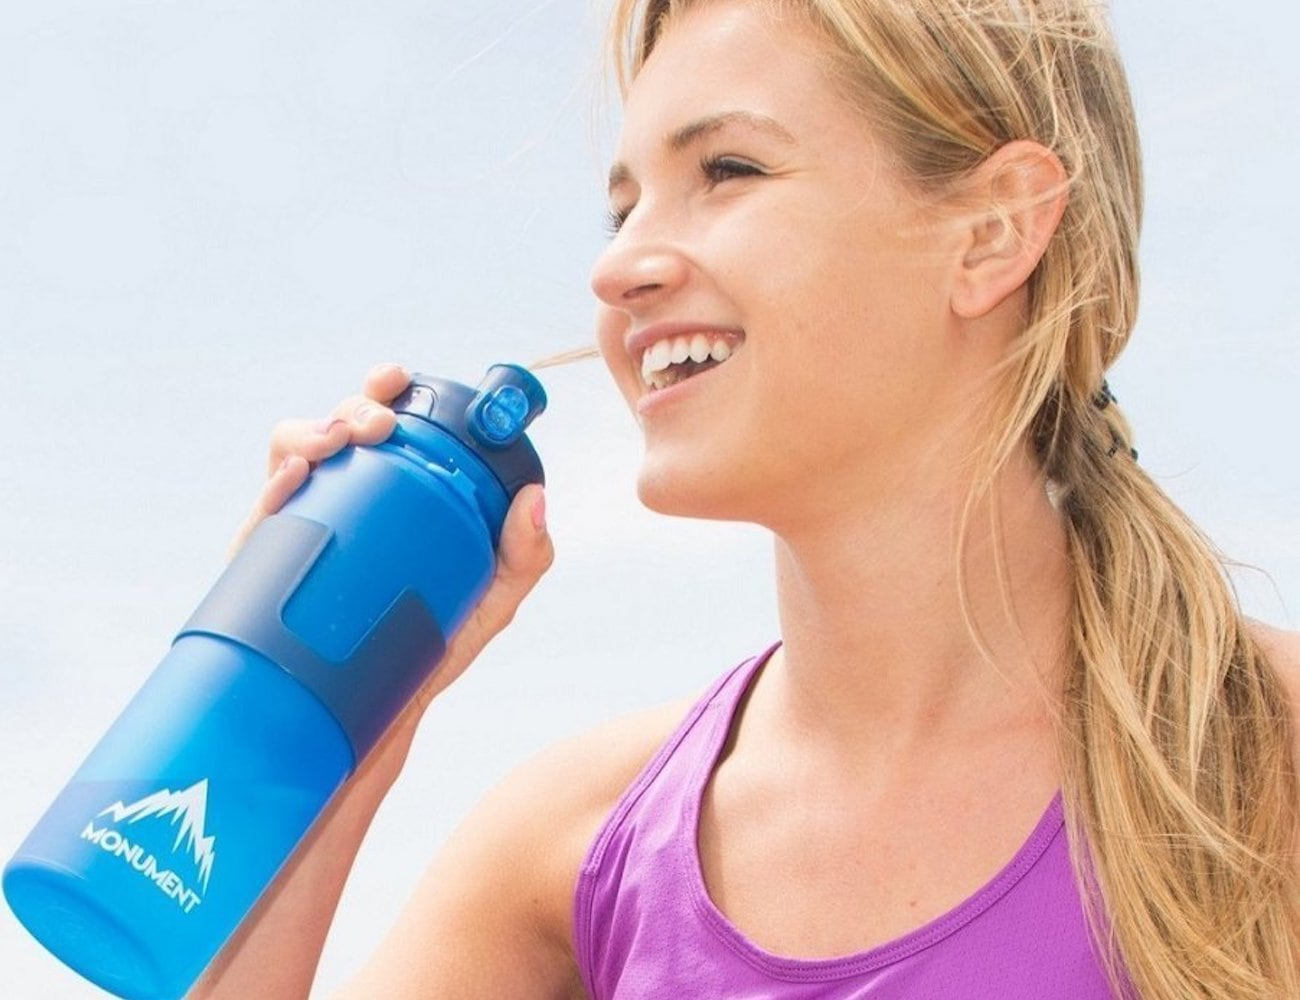 Monument Collapsible Water Bottle is an easily storable thirst quencher